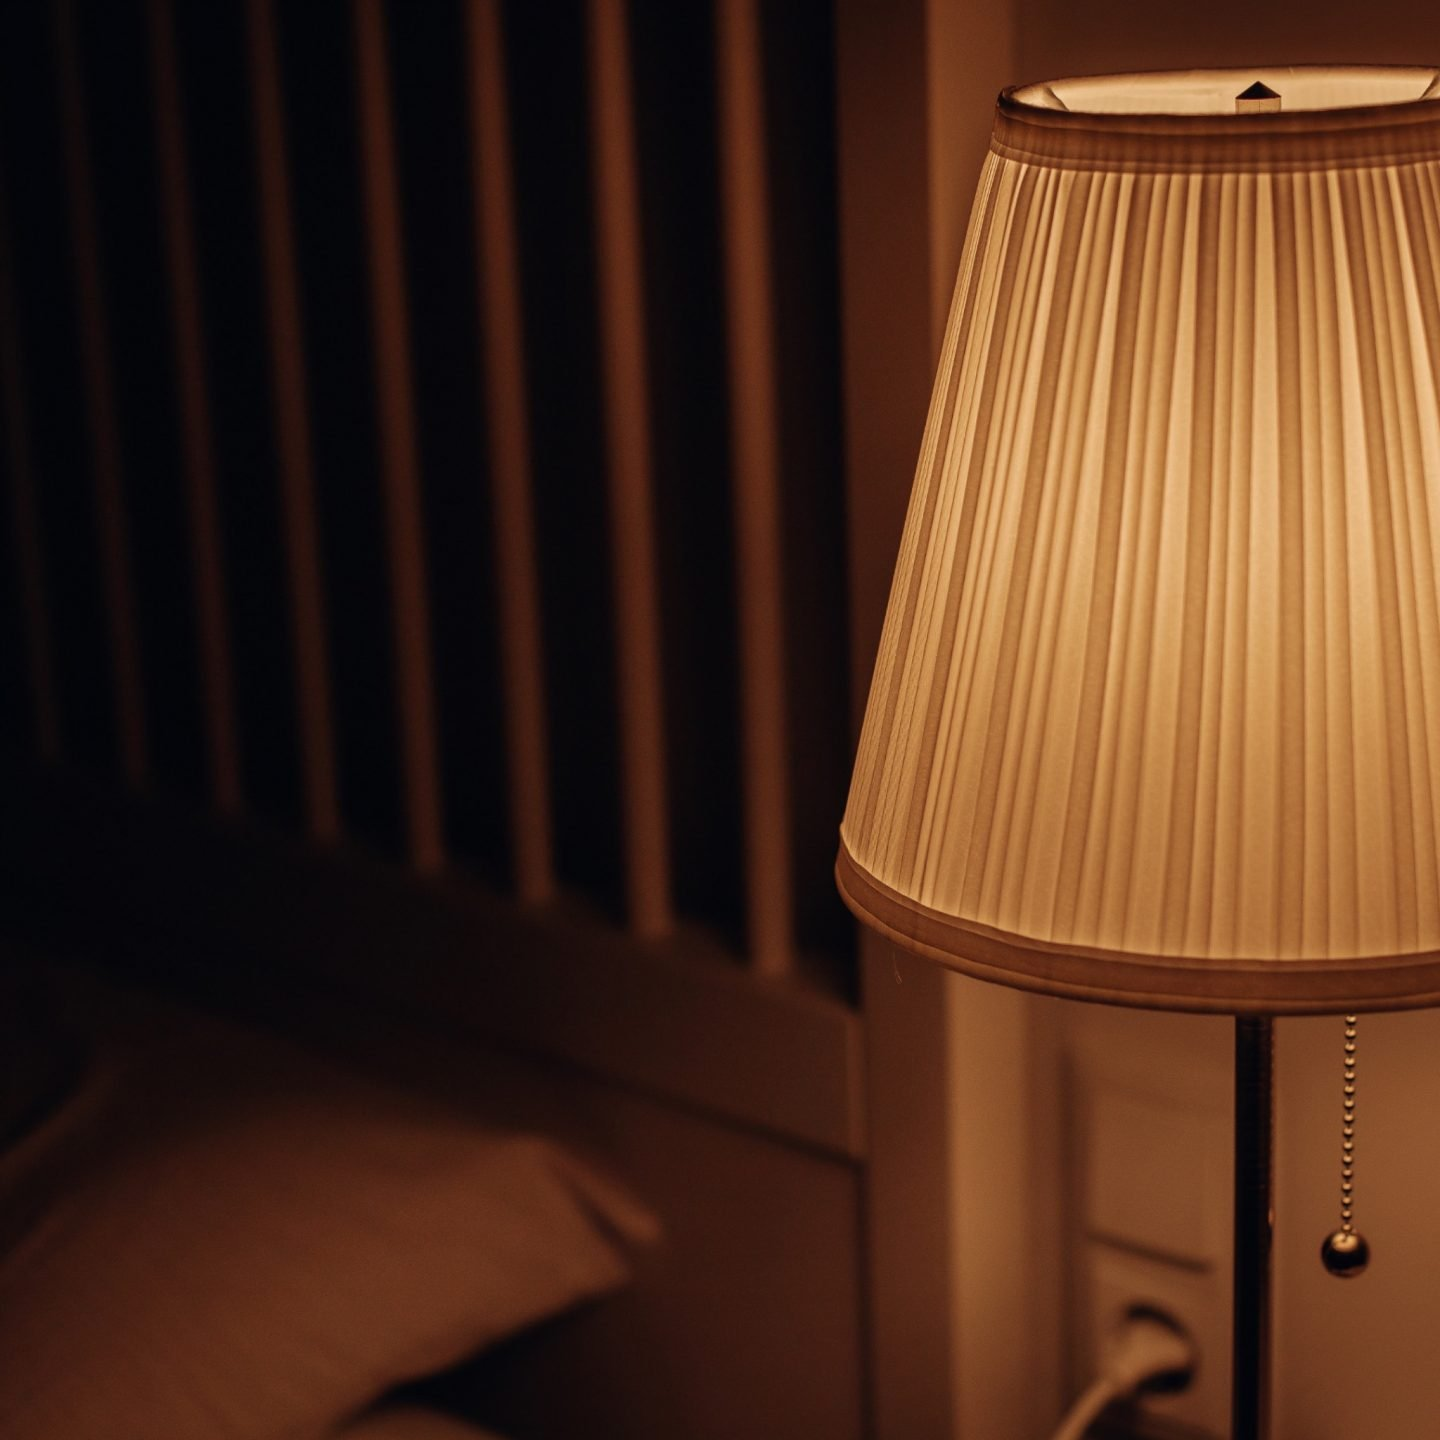 a bed side lamp with its soft glowing light on